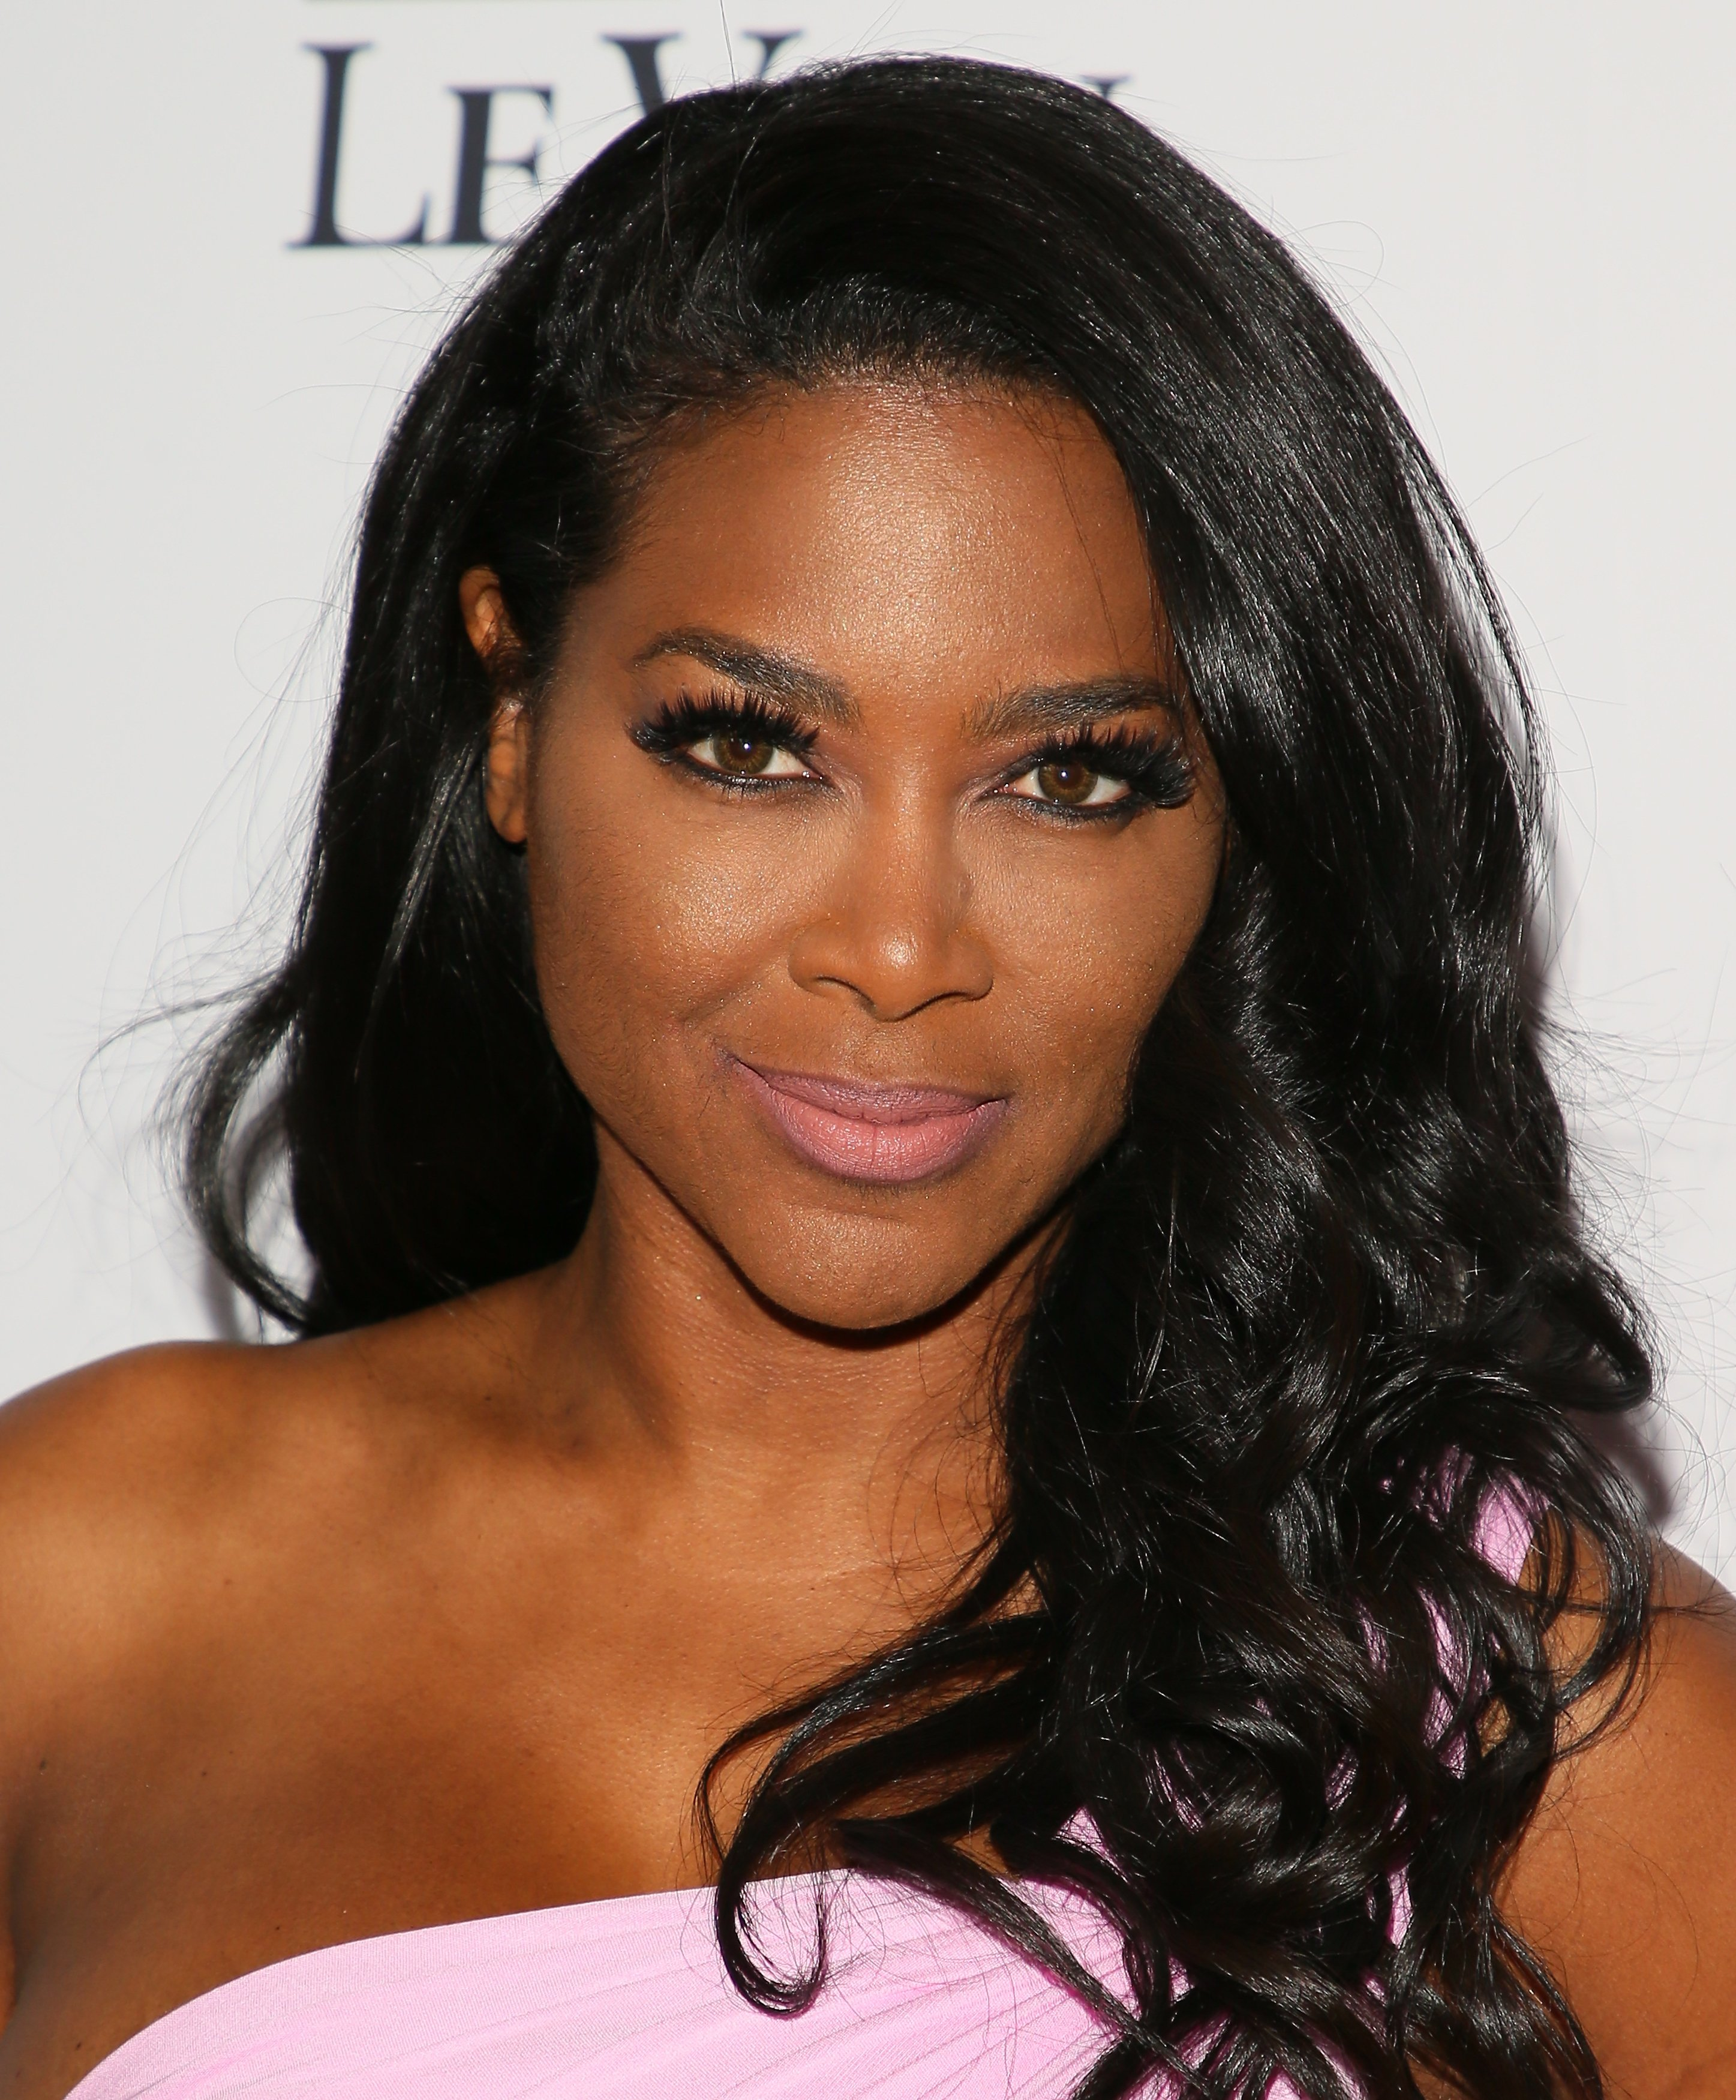 Kenya Moore at the OK! Magazine's Annual Pre-Oscar Event in California on Feb. 22, 2017   Photo: Getty Images